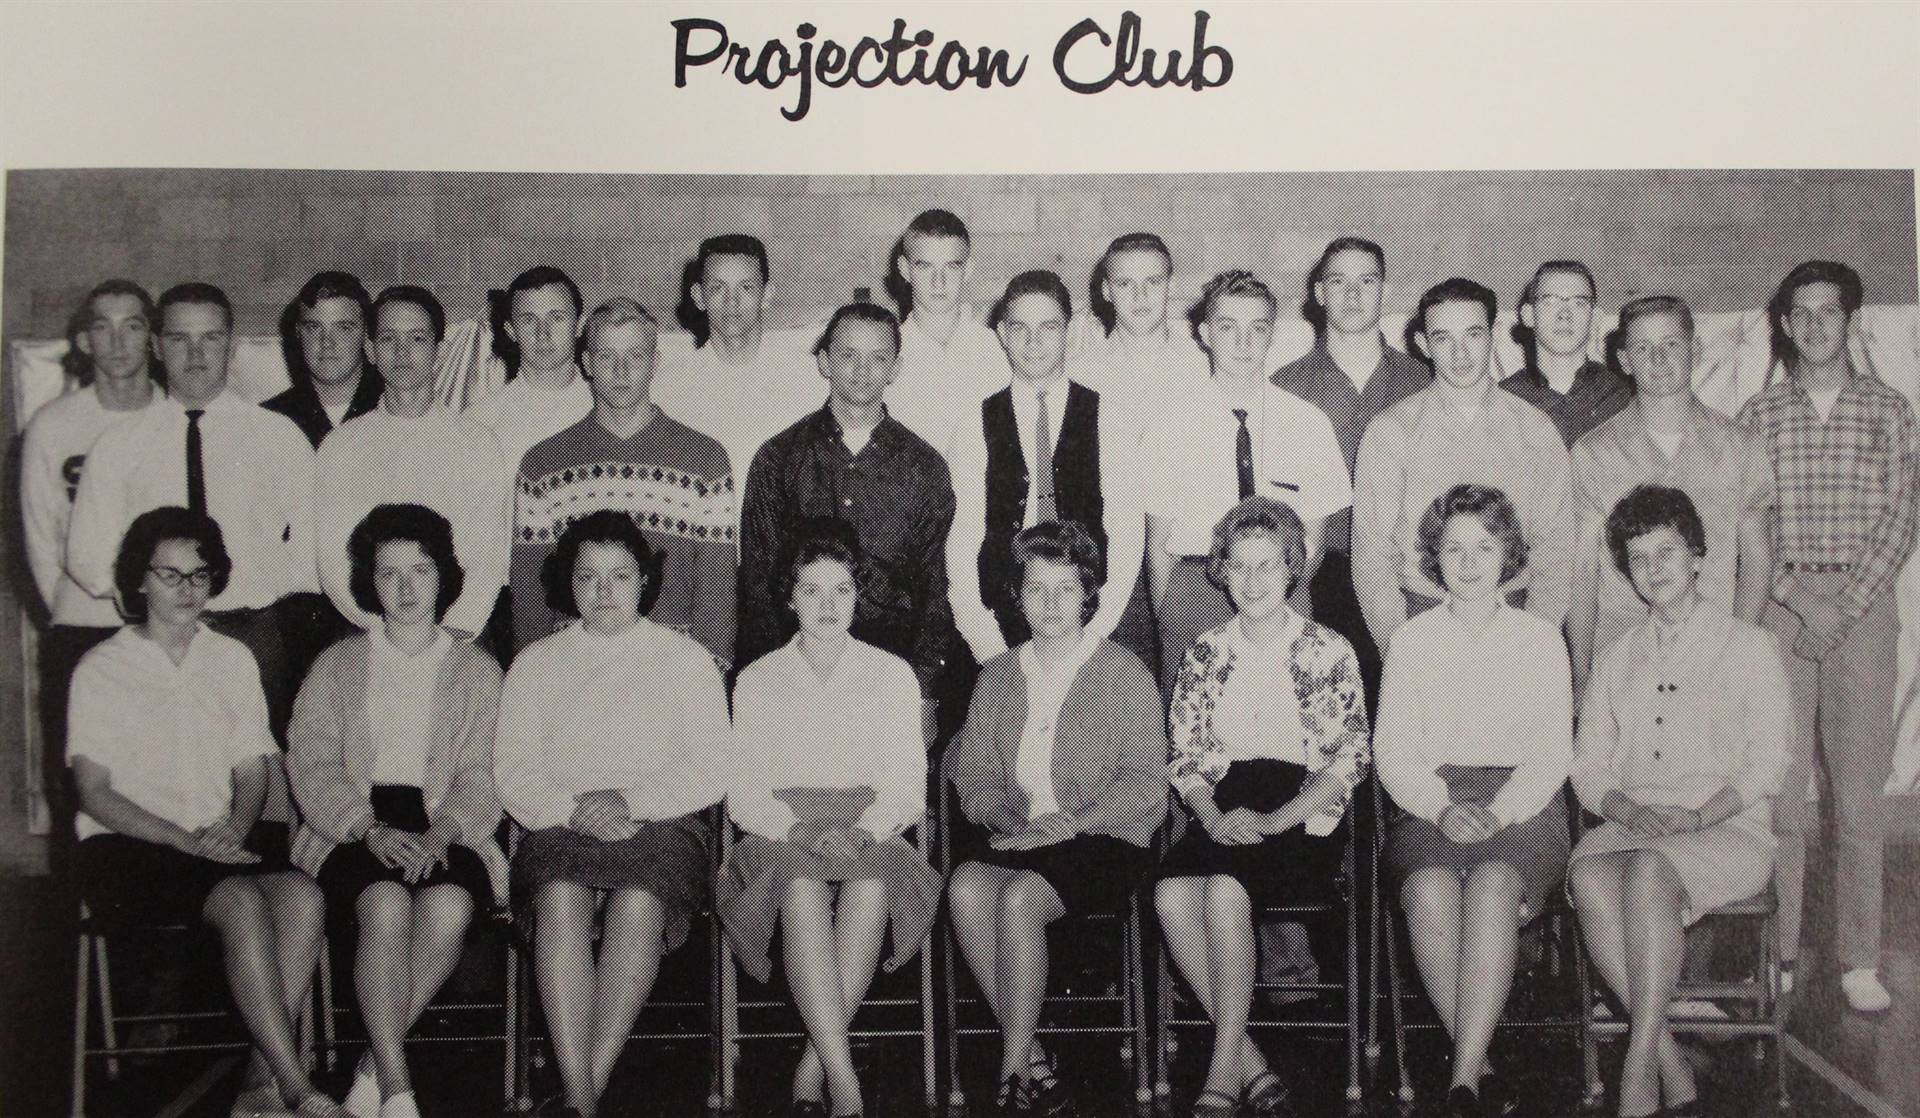 1964 Projection Club